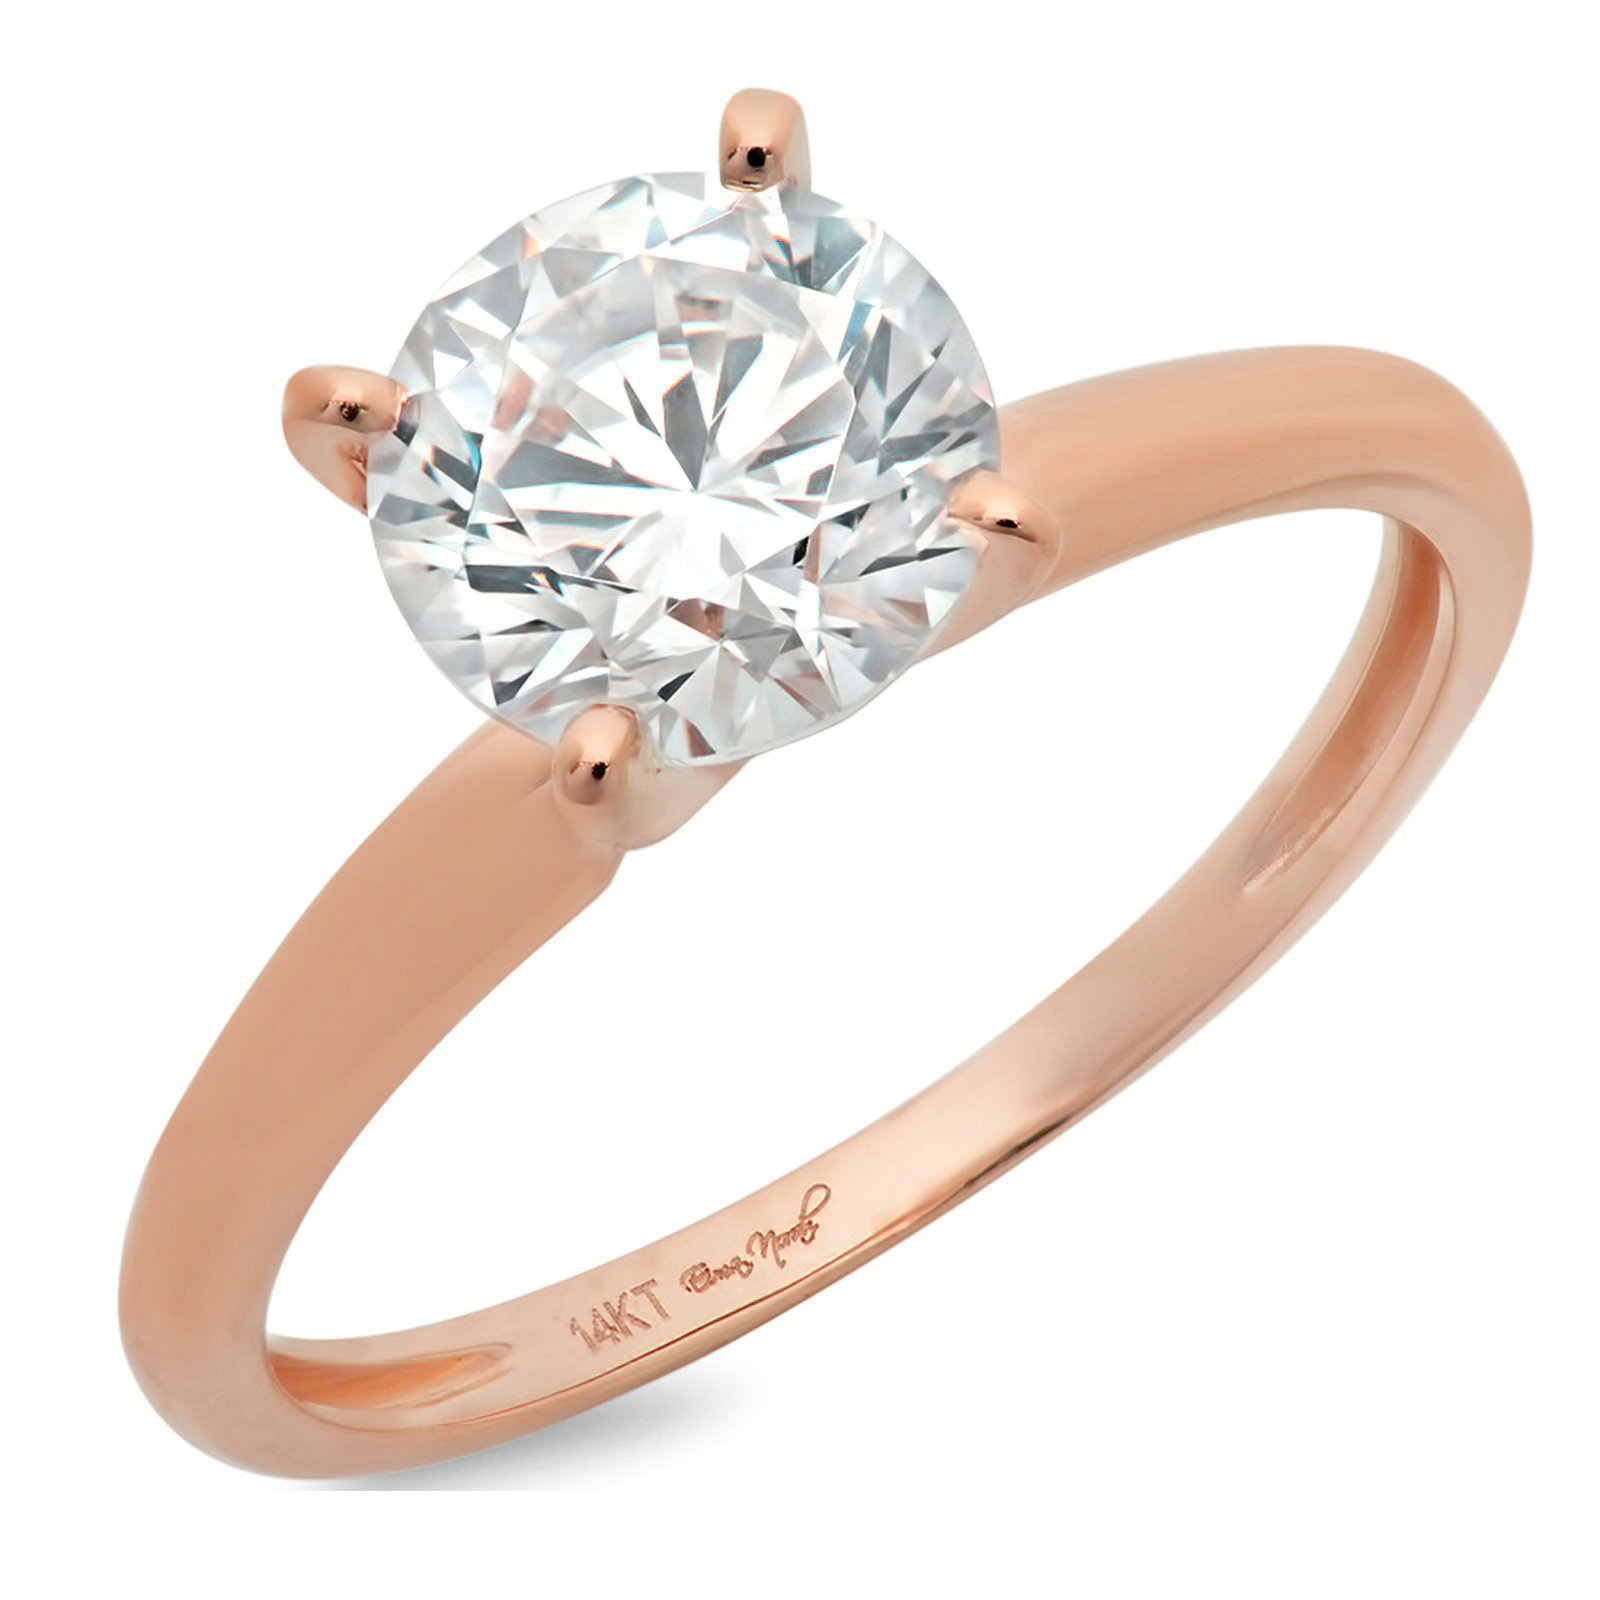 2.8ct Round Brilliant Cut Classic Wedding Statement Anniversary Designer Engagement Bridal 4-prong Solitaire Ring 14k Rose Gold, Clara Pucci, 5 by Clara Pucci